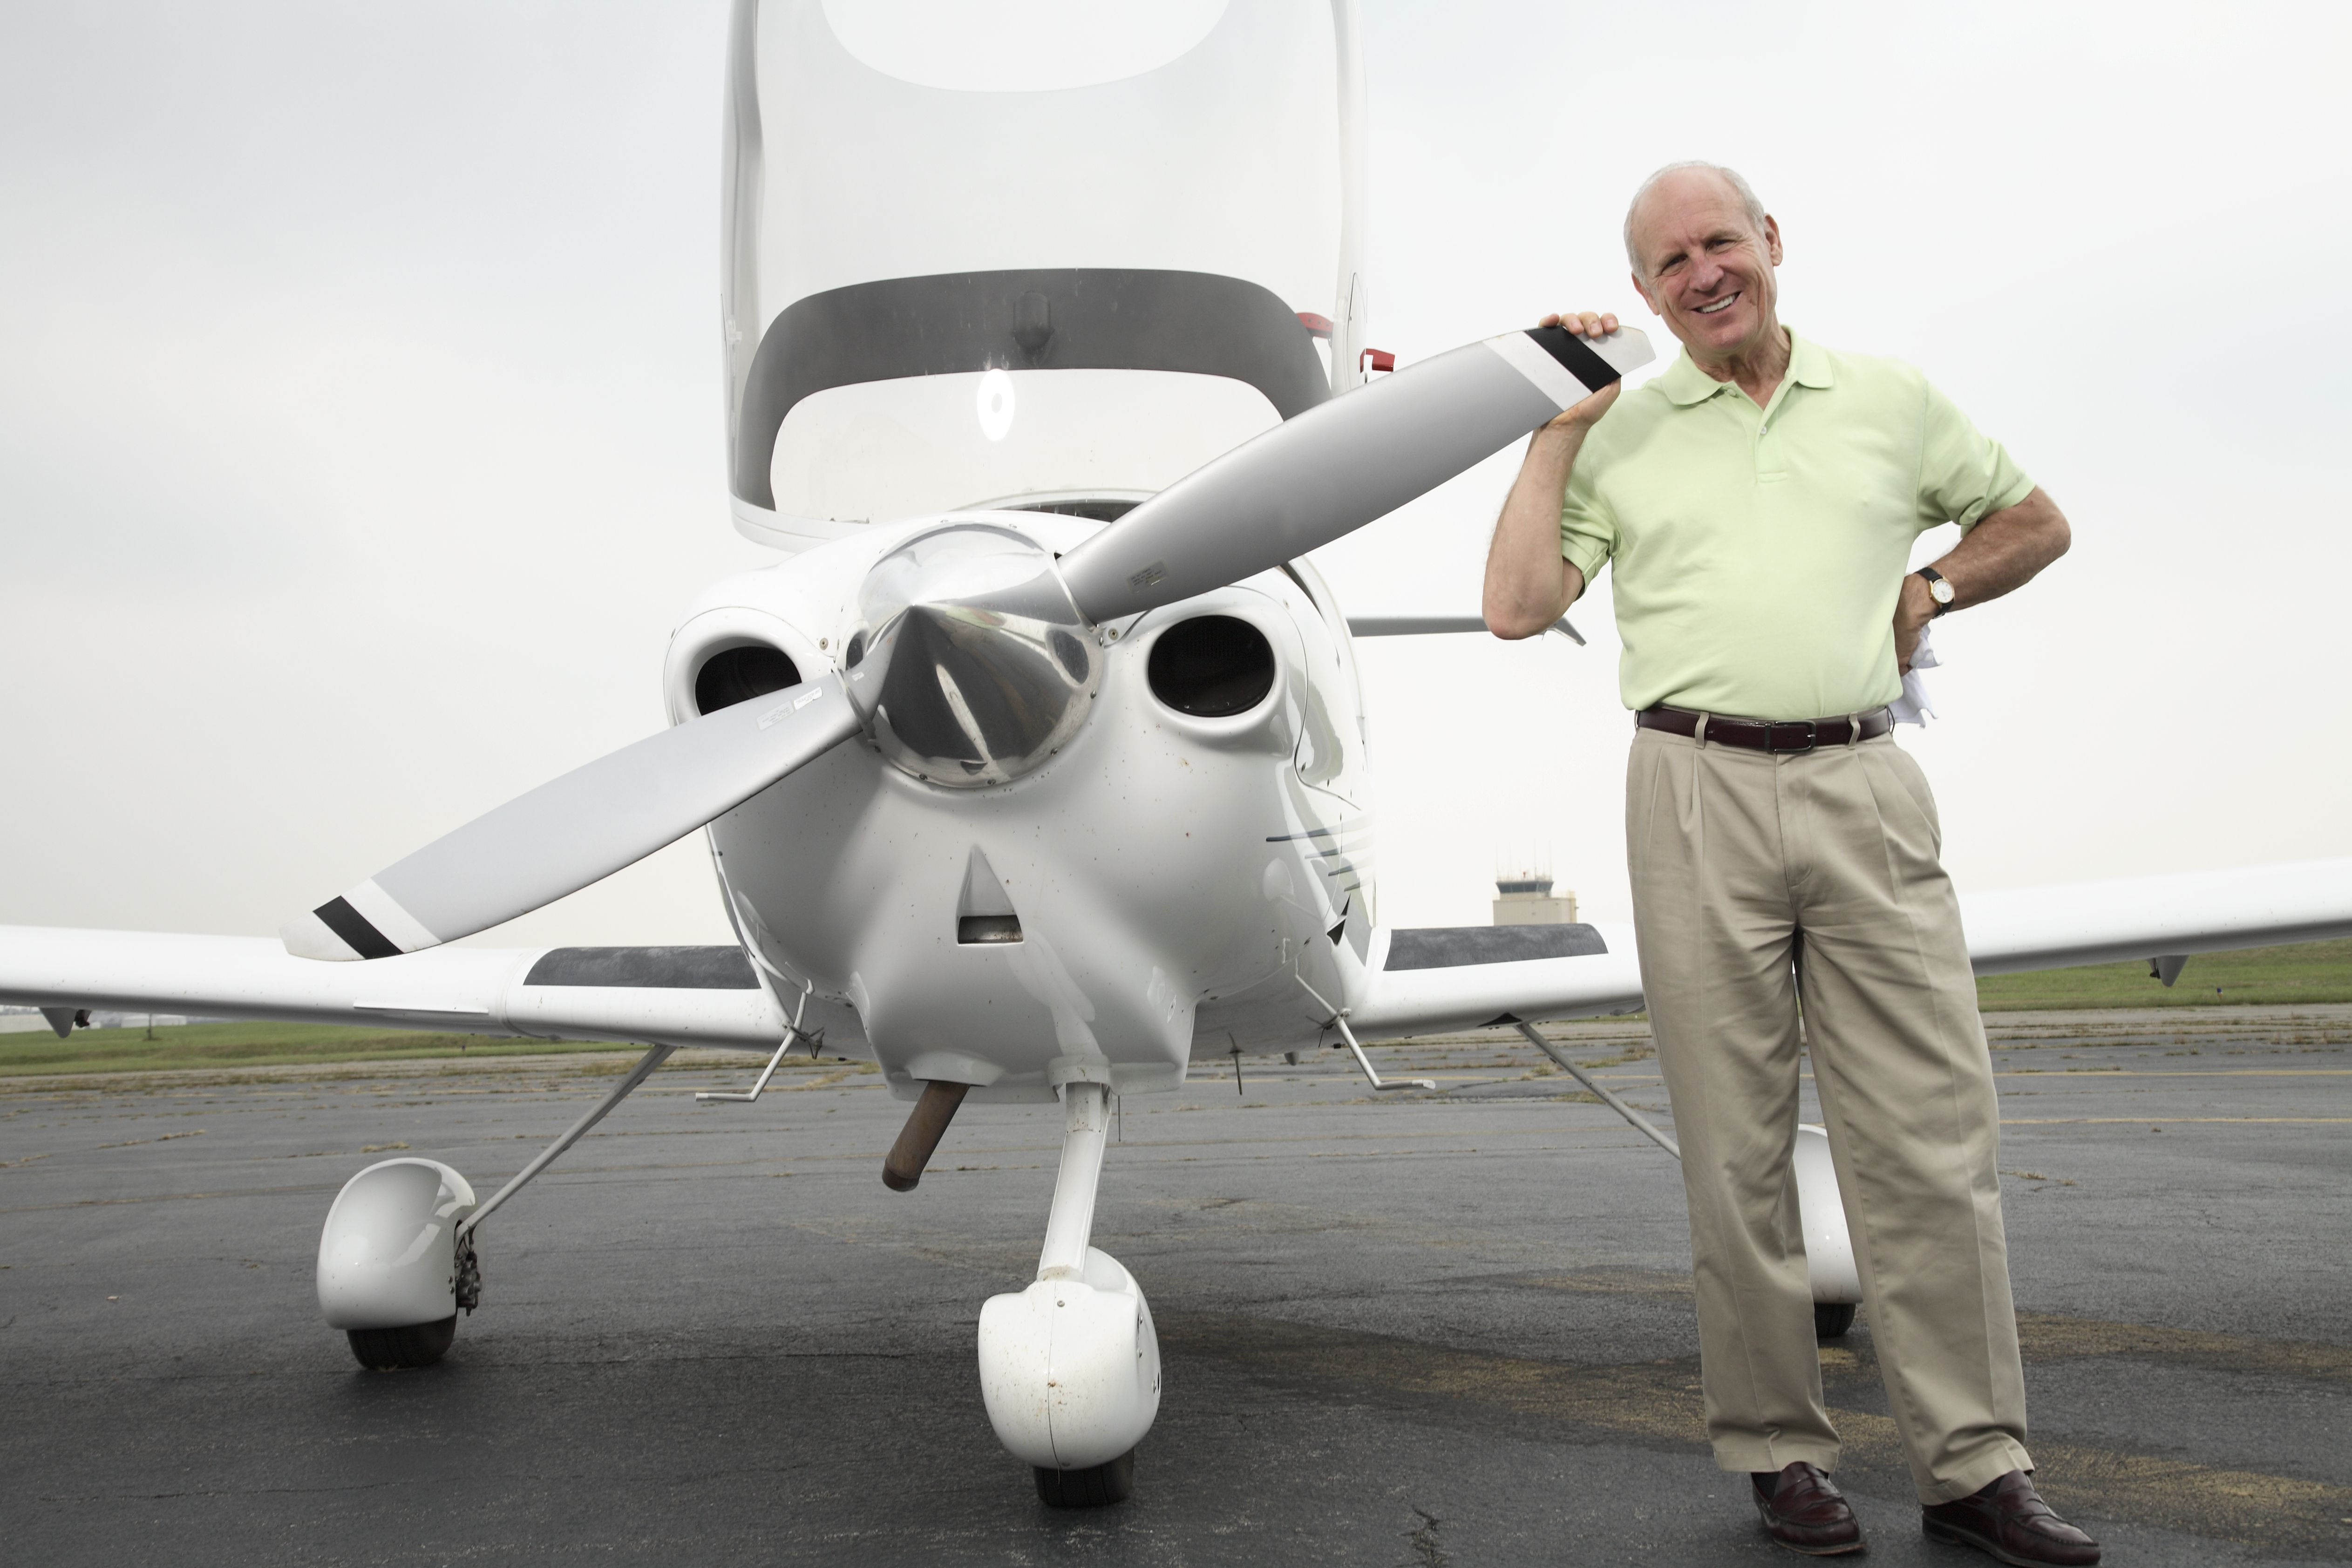 Pilot with his small airplane